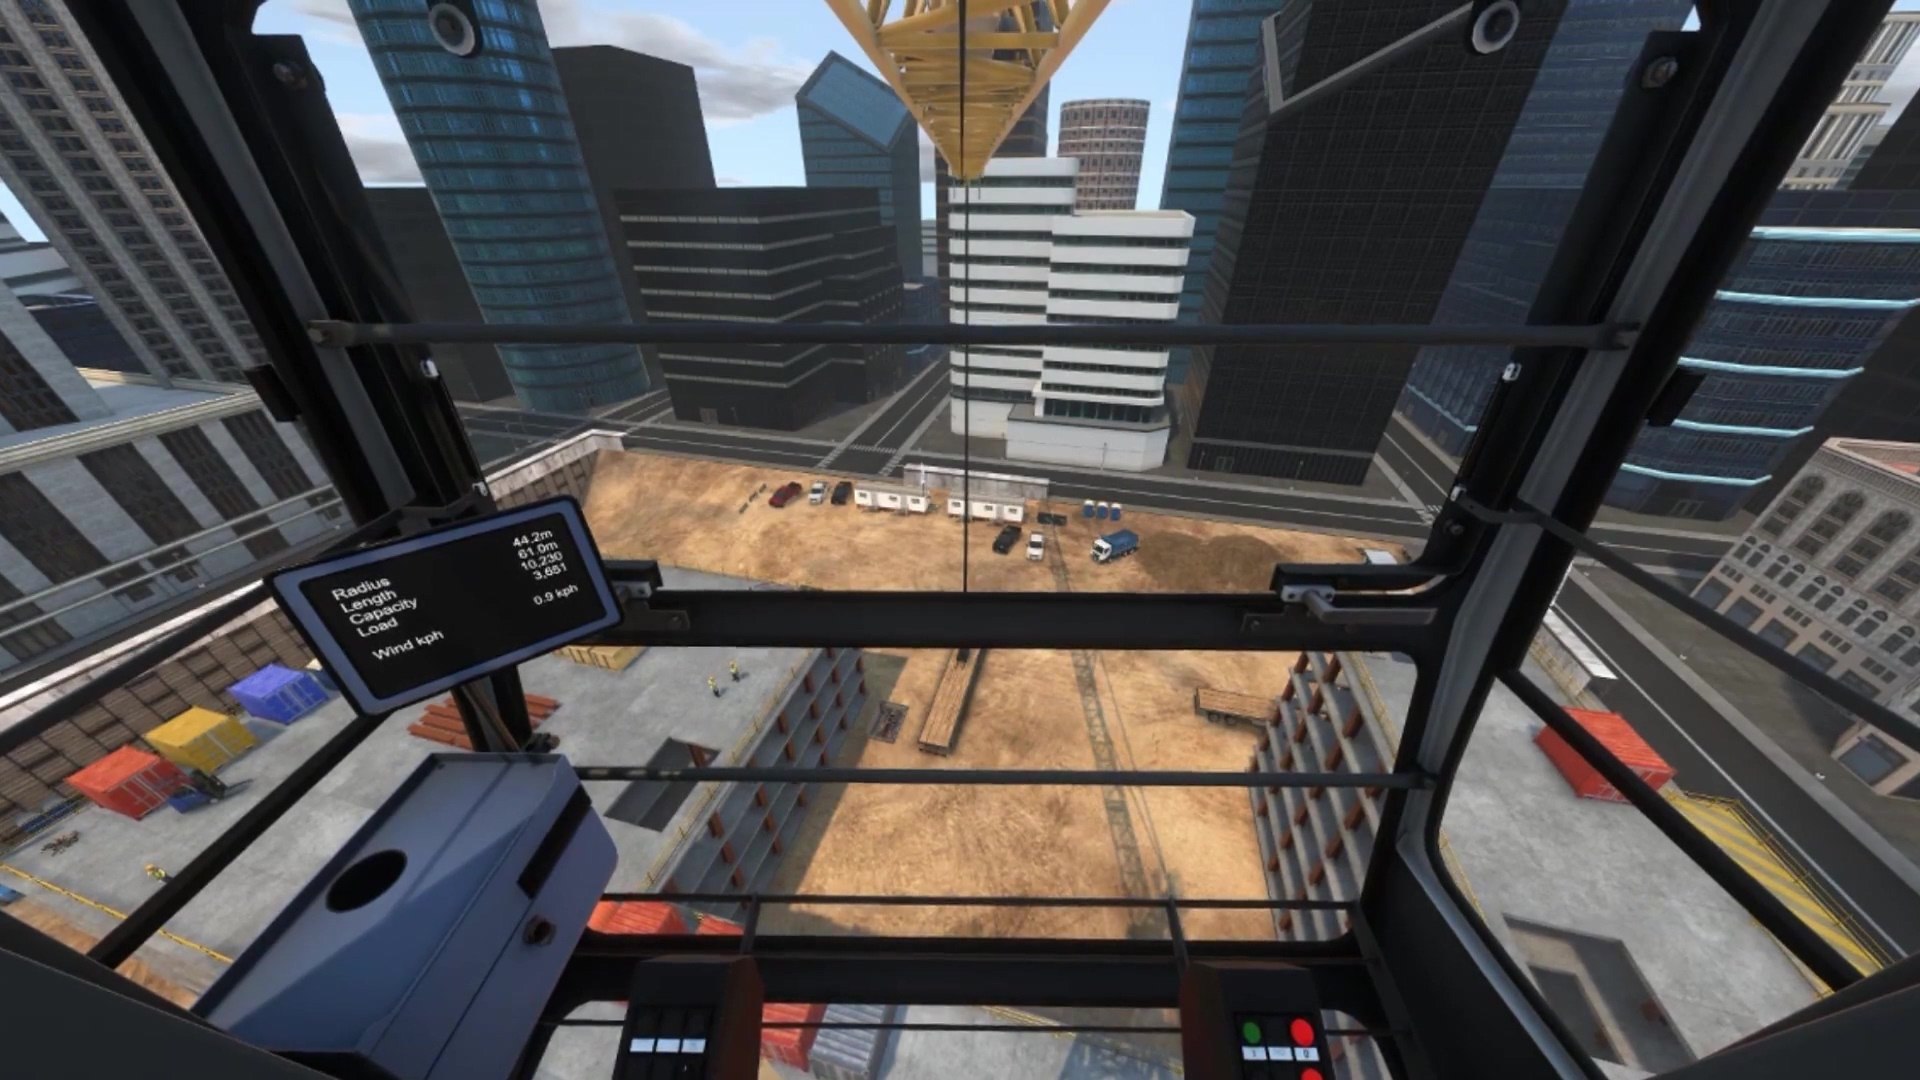 ITI-VR-TowerCrane-FirstLook-062019-web-thumb